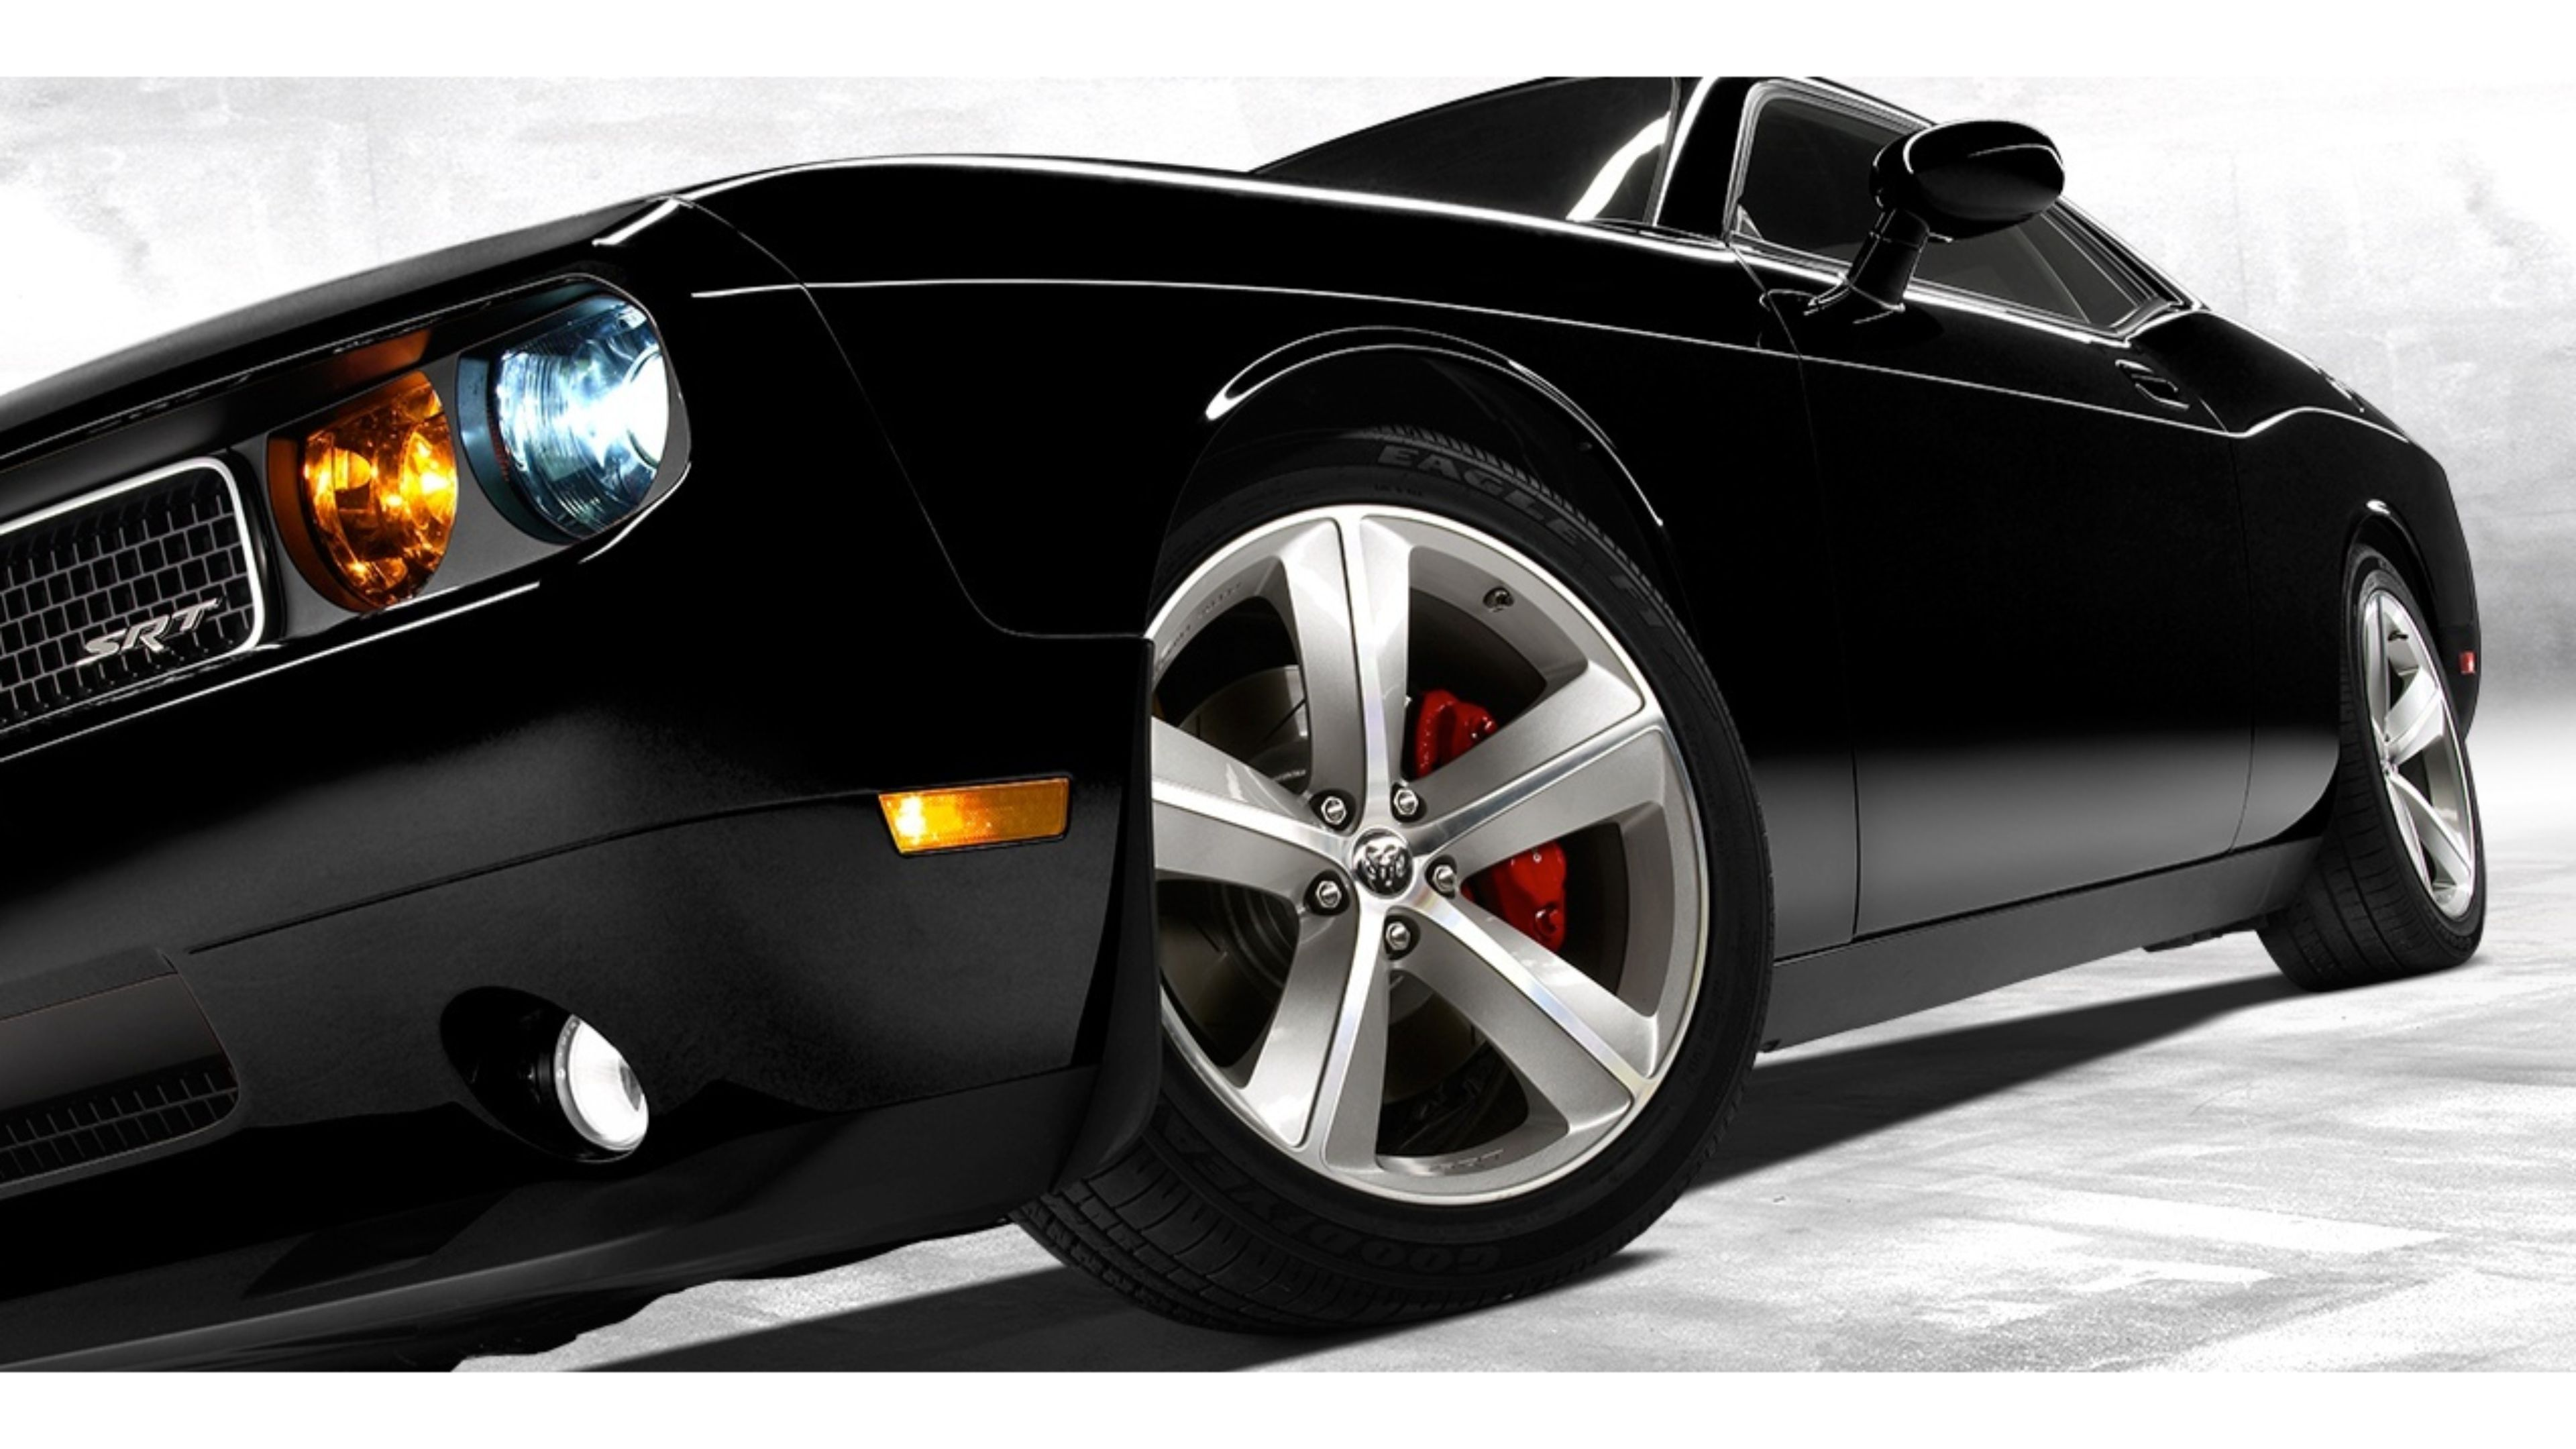 Fast Cars Furious S wallpaper